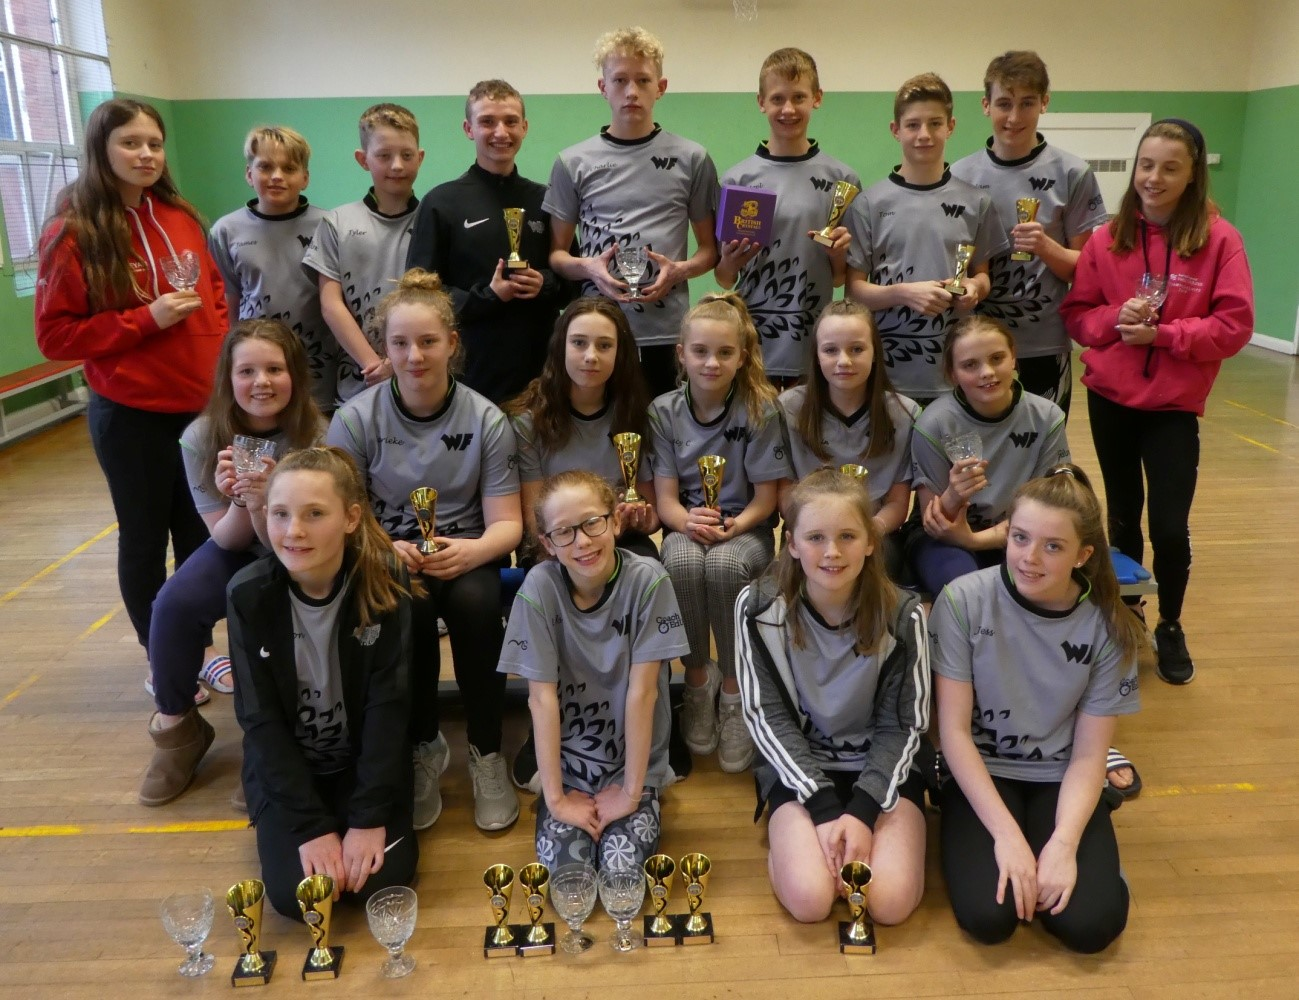 WYRE FOREST SWIMMING CLUB AWARDED TOP VISITING CLUB AT CRYSTAL OPEN MEET